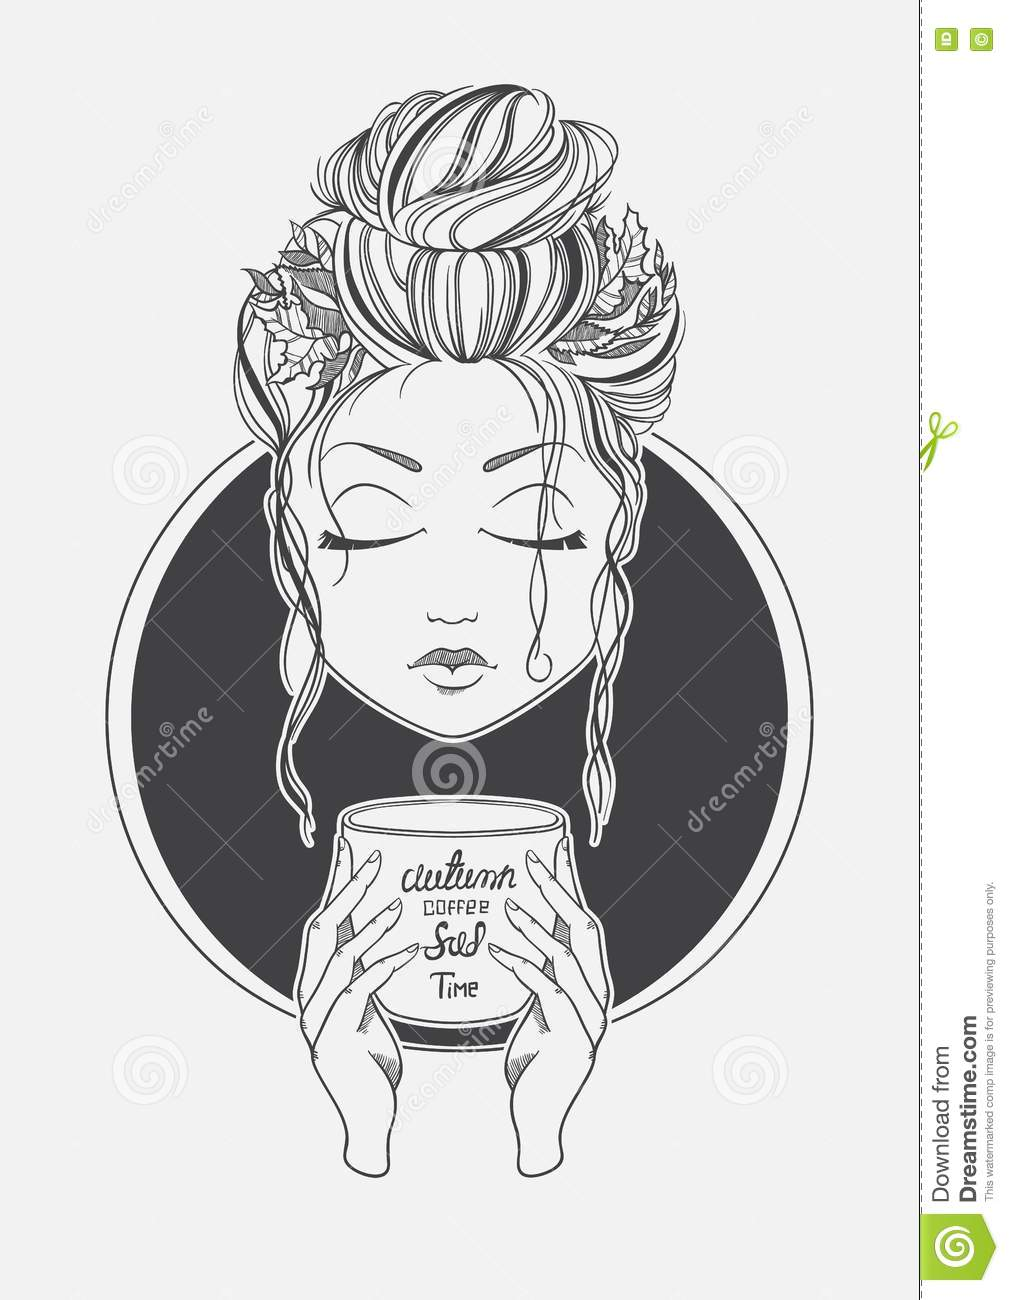 It's just an image of Remarkable Girl Drinking Drawing